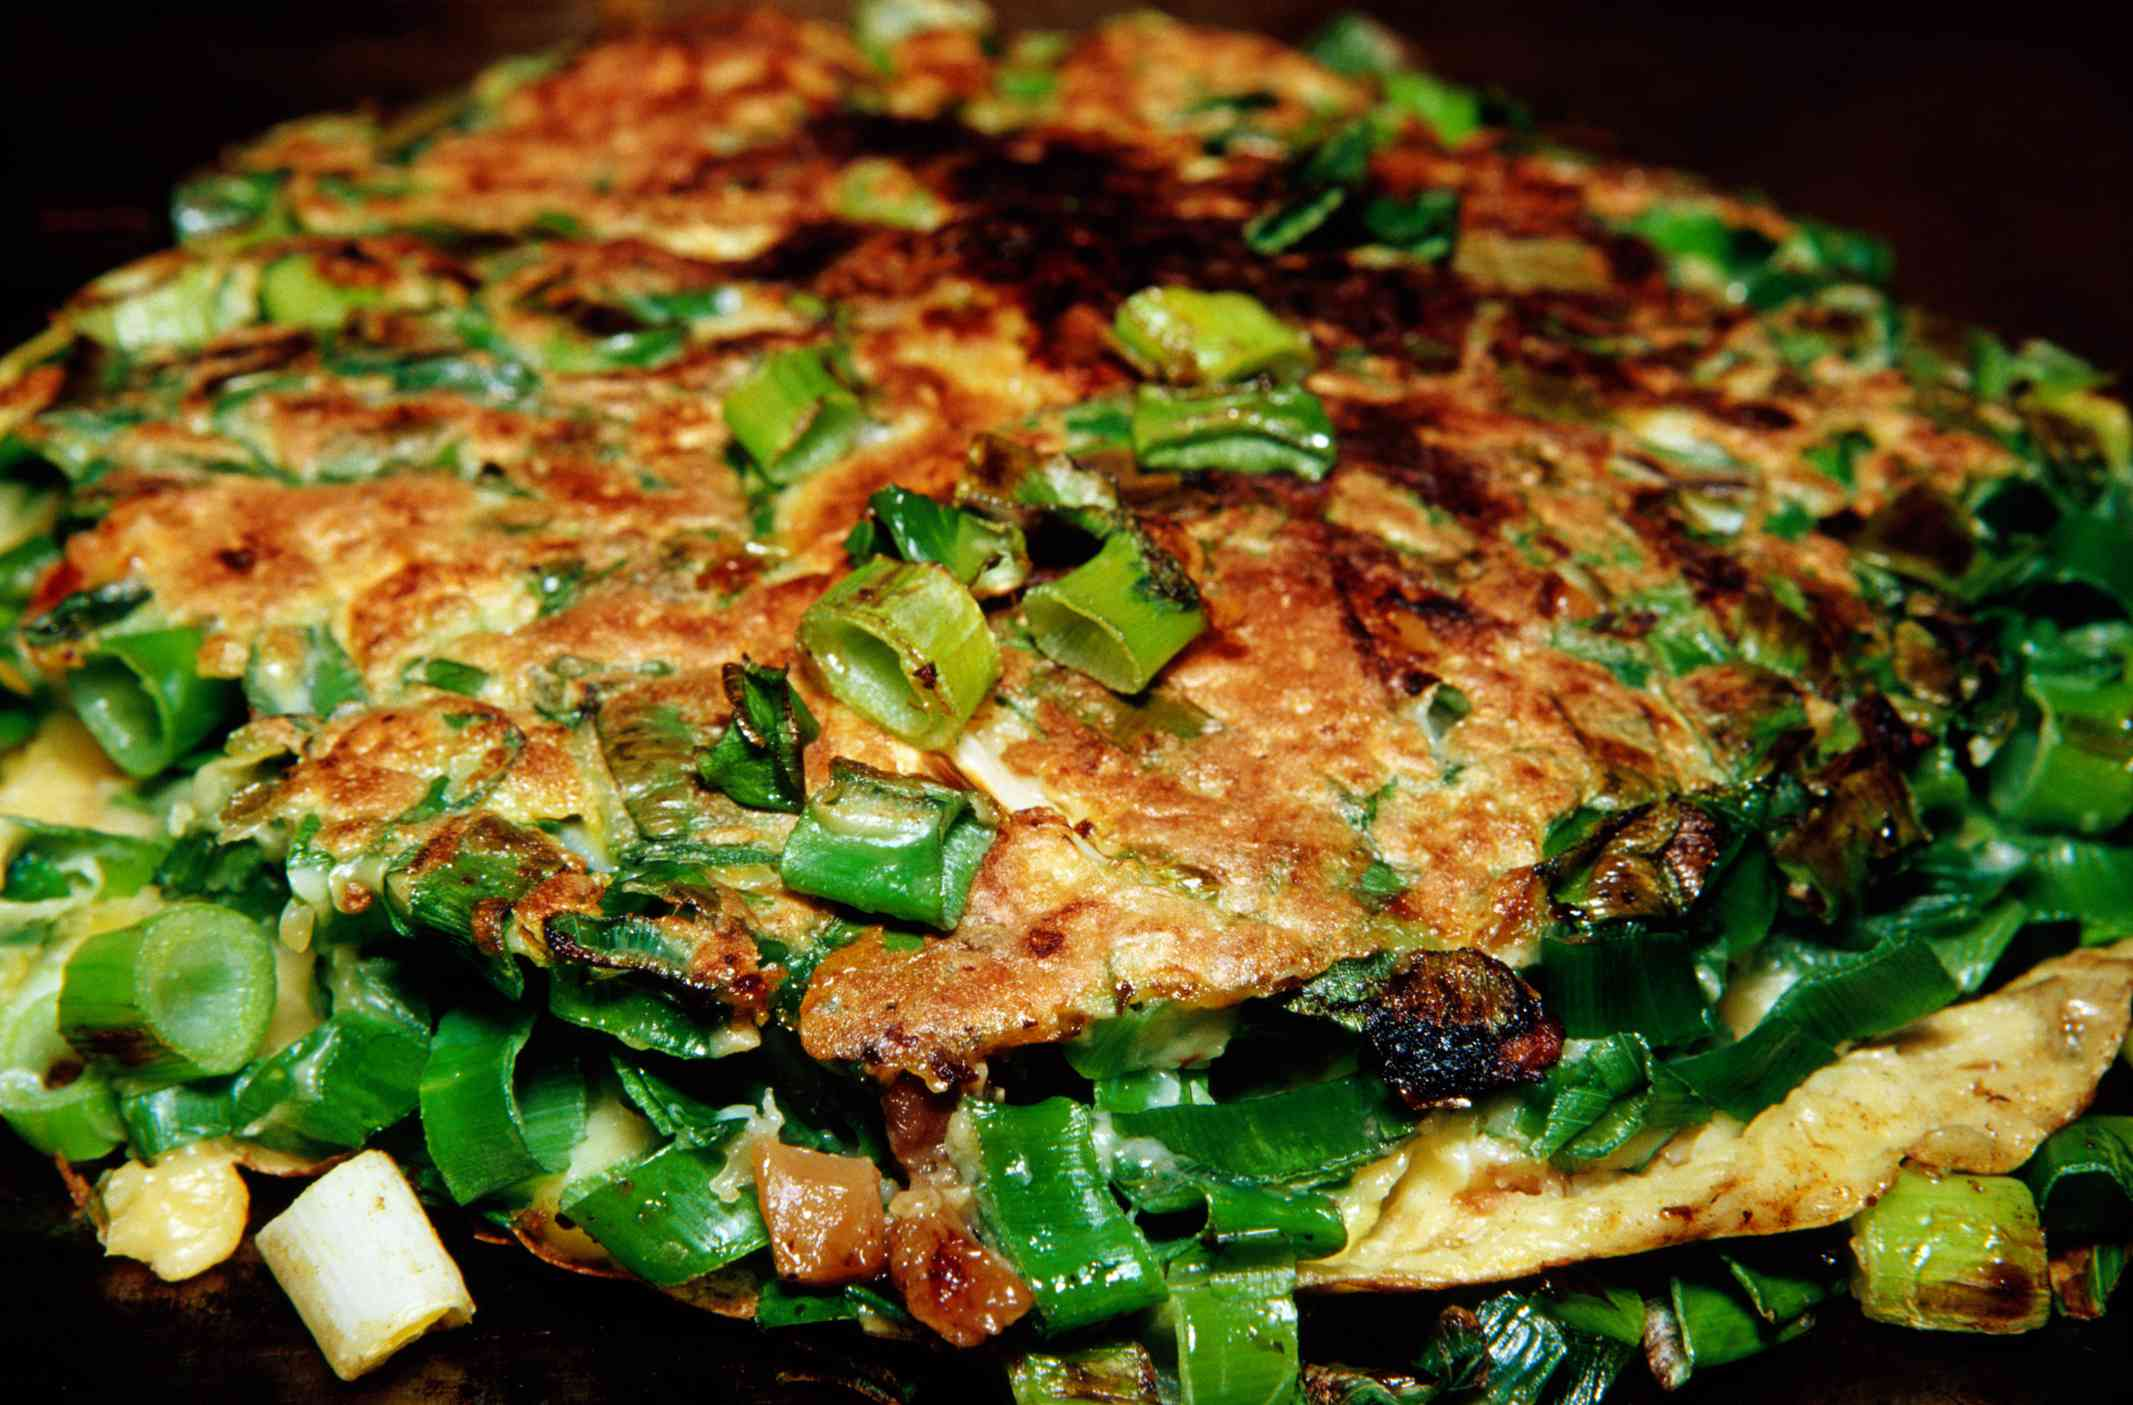 Fried scallion pancakes with additional scallions as a garnish